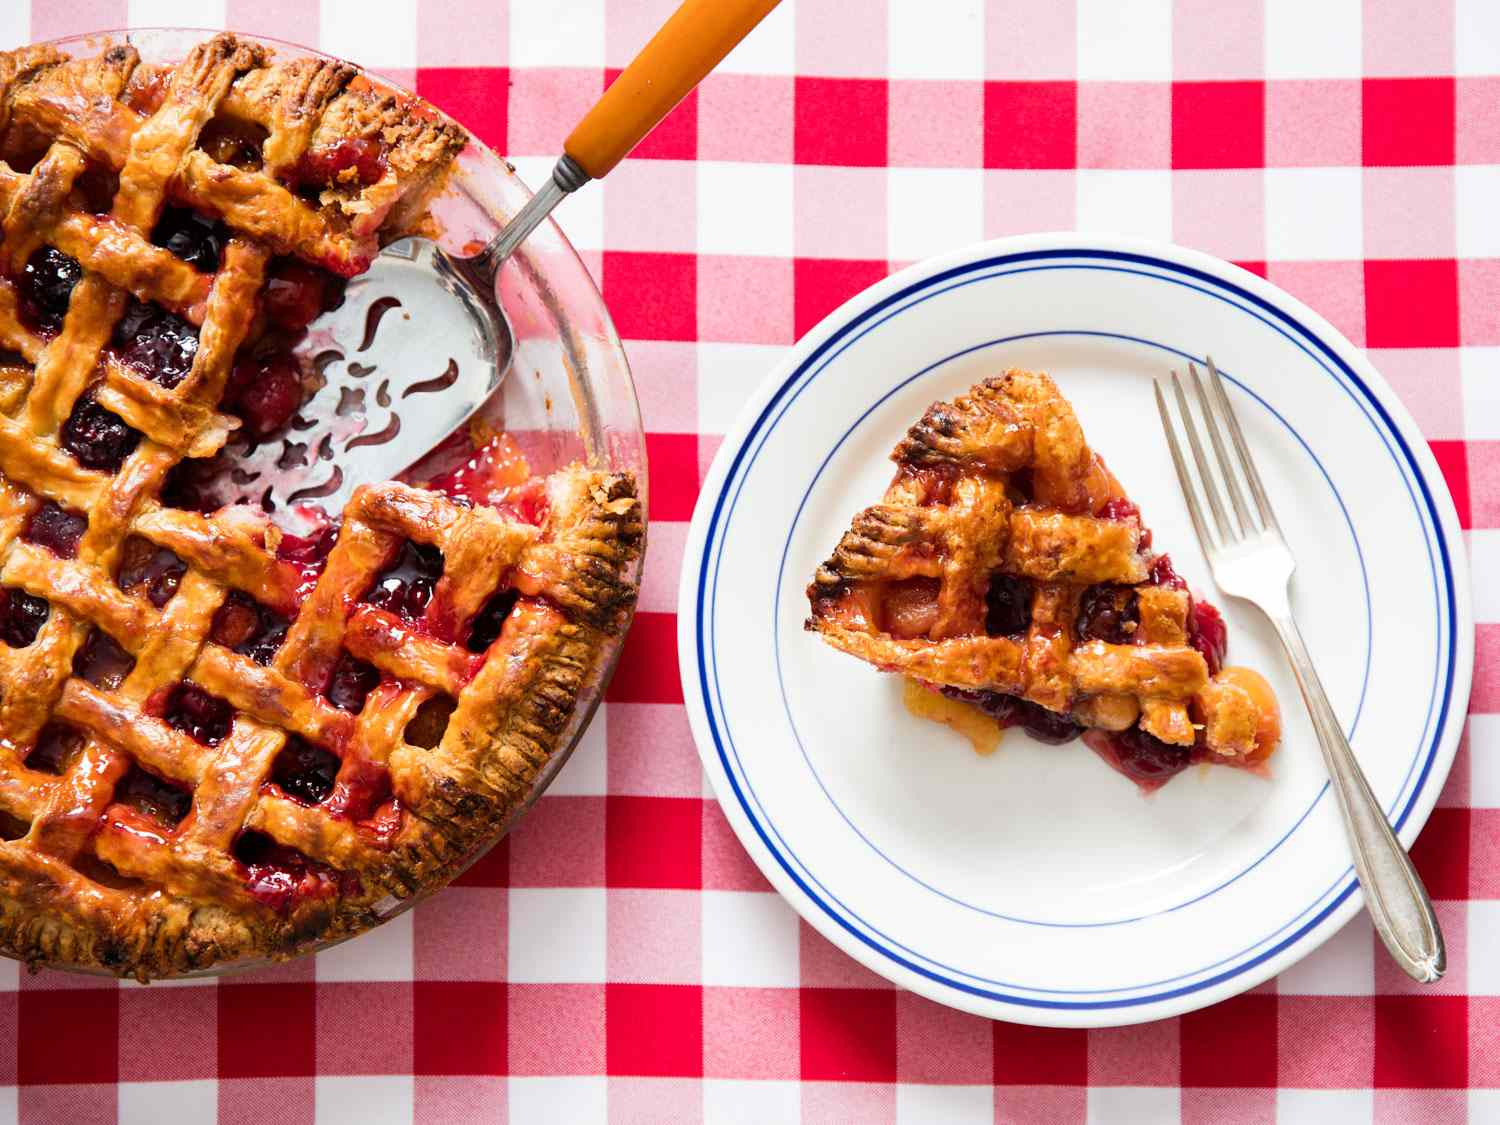 A cherry pie with a piece of cherry pie on a white plate with a fork.